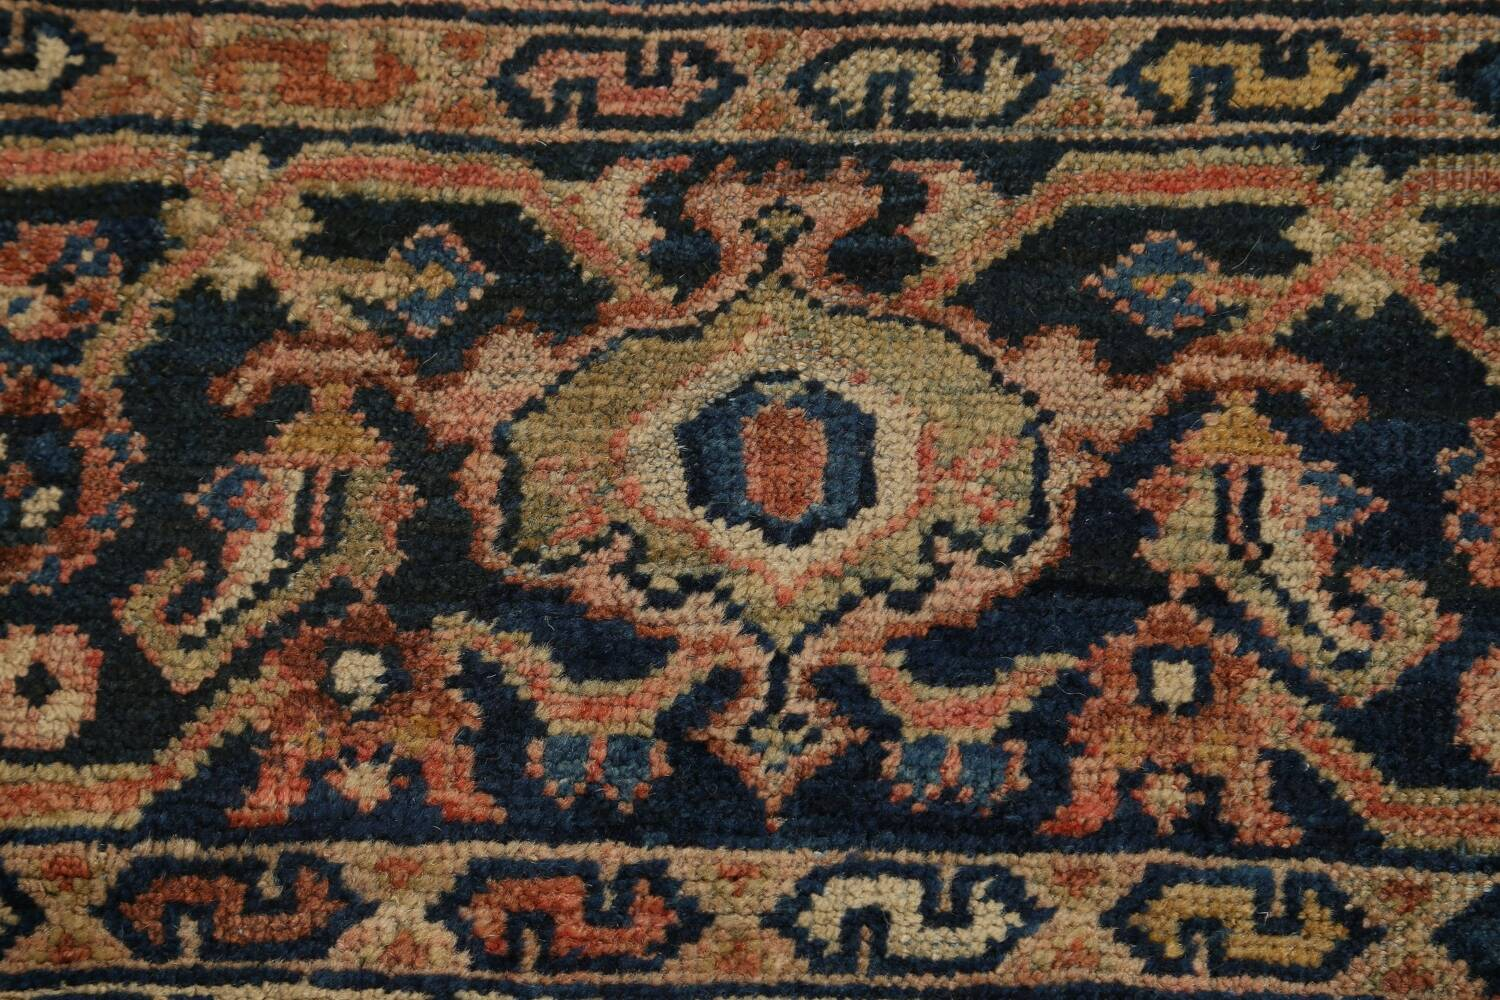 Pre-1900 Antique Vegetable Dye Sultanabad Persian Area Rug 10x13 image 9